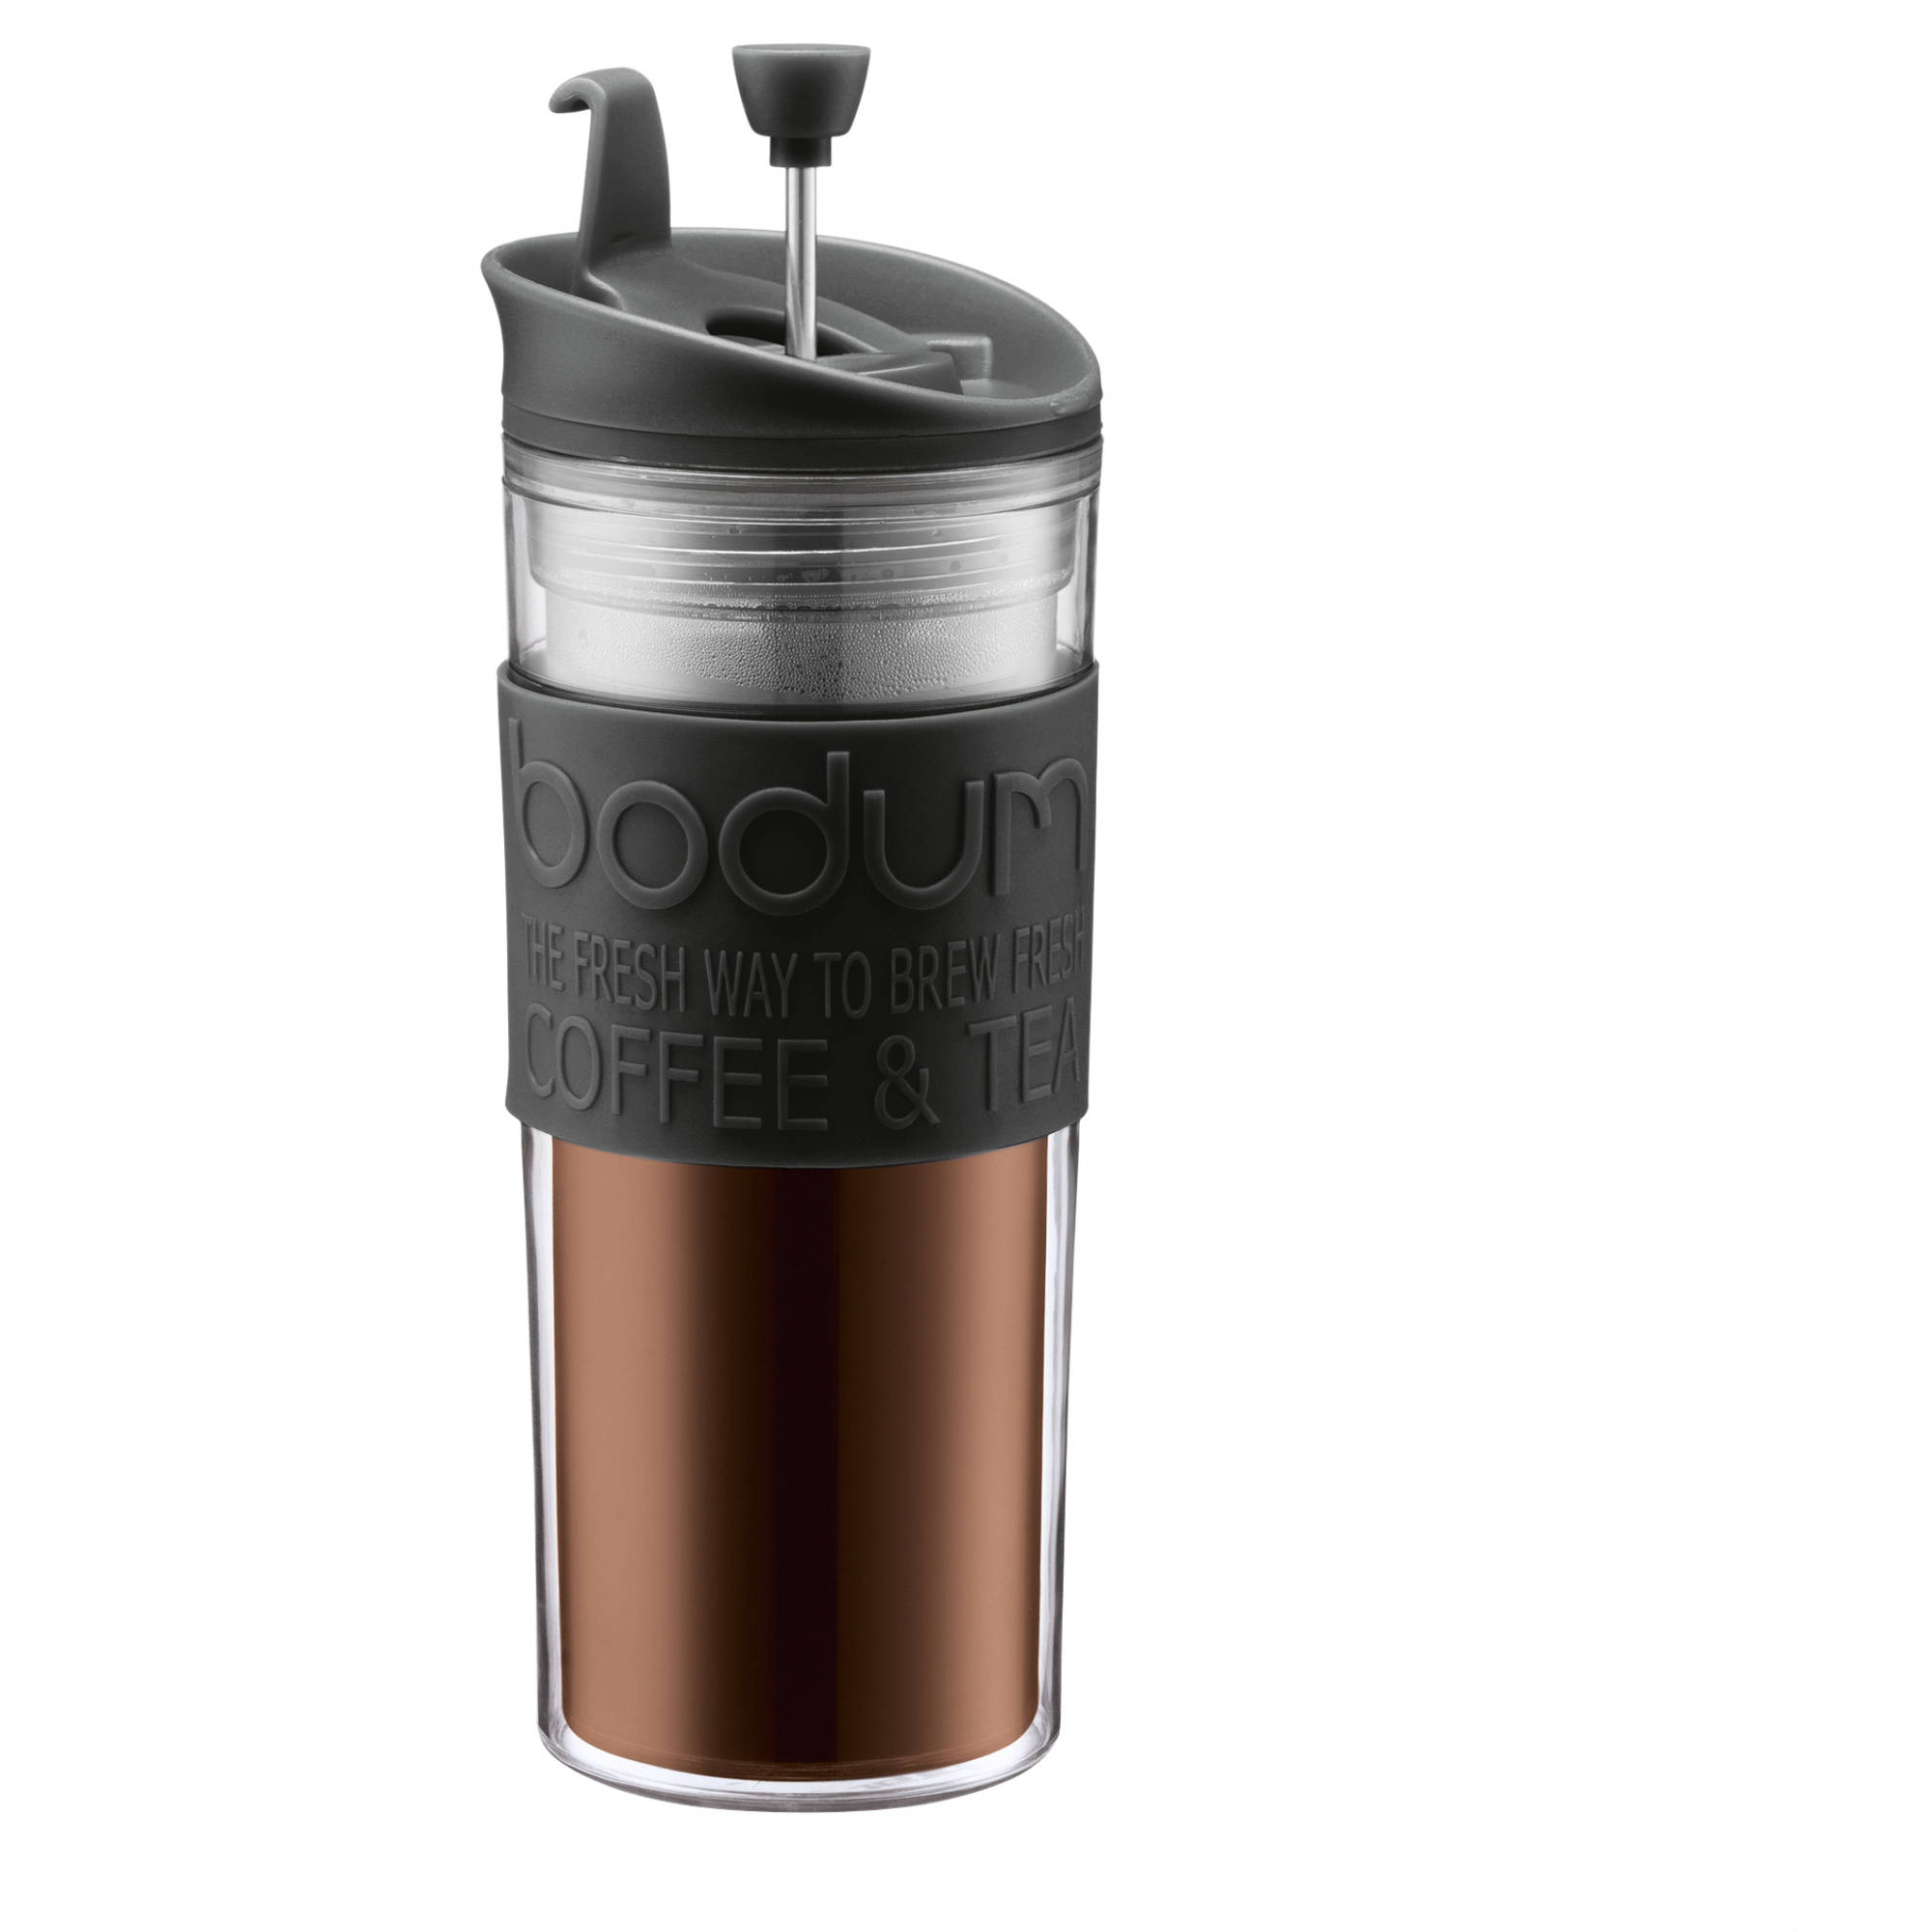 Bodum TRAVEL PRESS Coffee maker, Non Slip Silicone Grip, 0.45 L, 15 Ounce, Black by Bodum